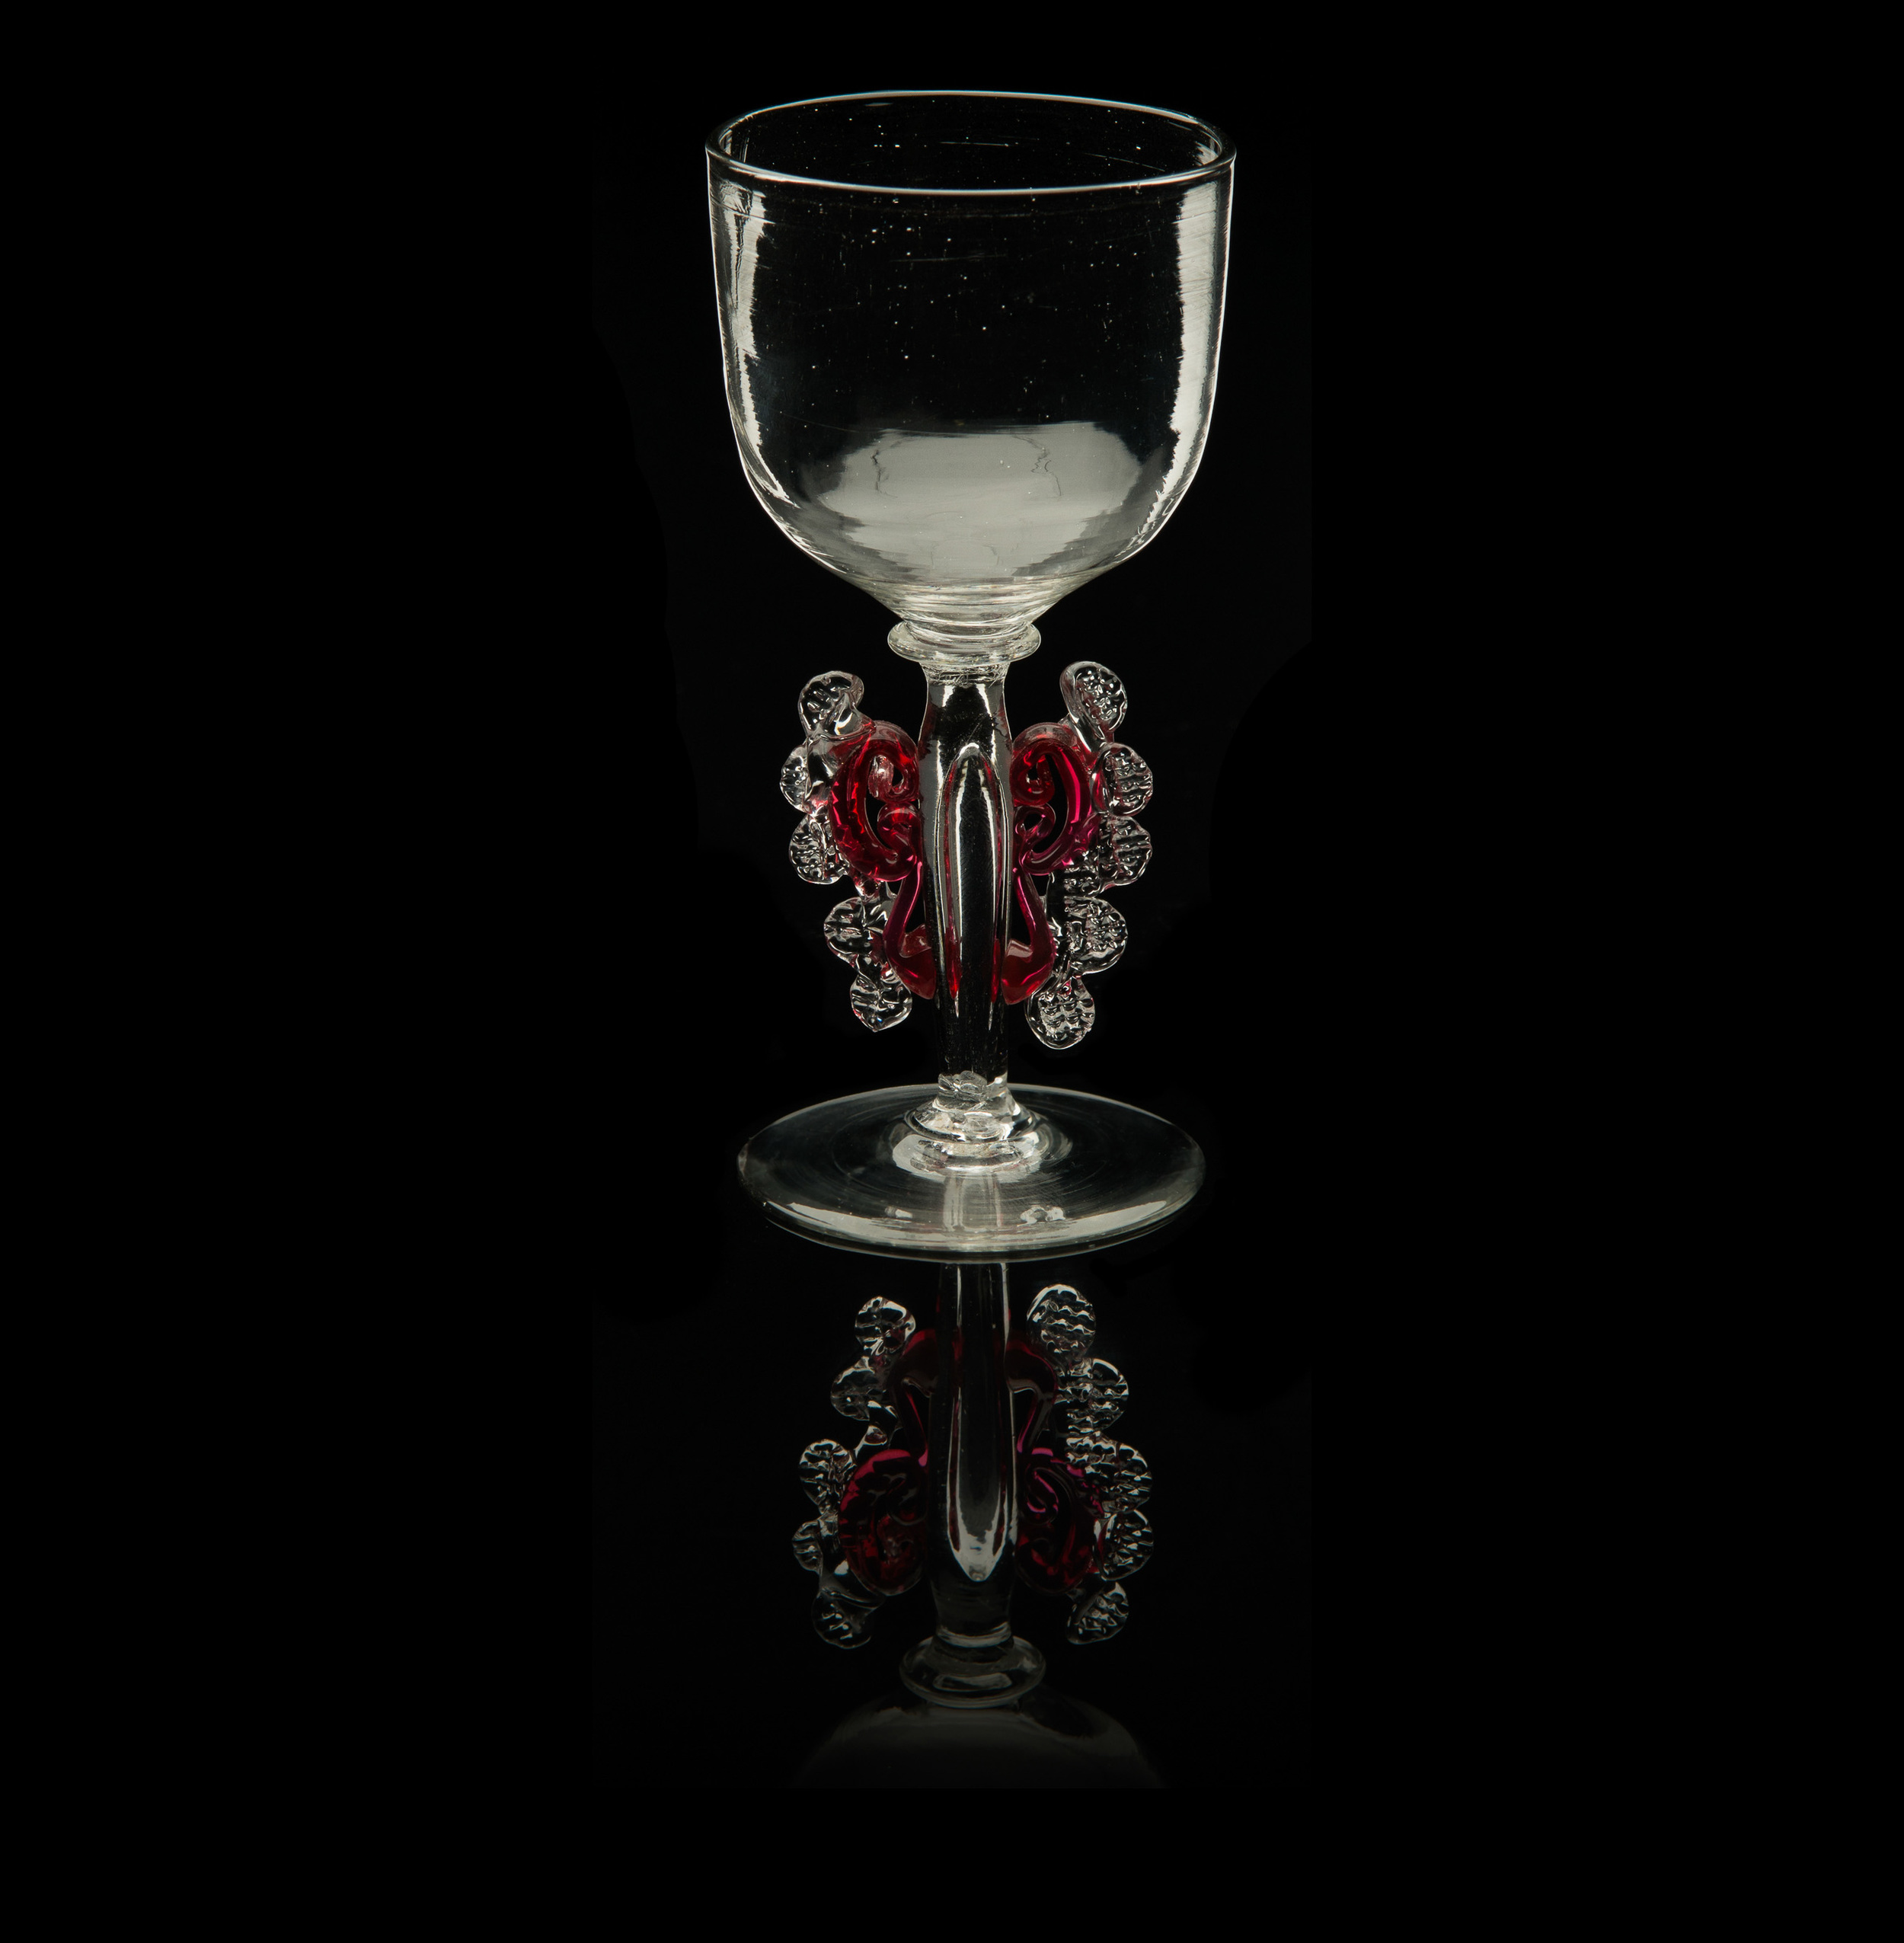 Unknown Venetian, Goblet with Rubyand Crystal Morise Decoration on Stem (17th-18th centuries,glass, 4 5/16 inches), VV.612